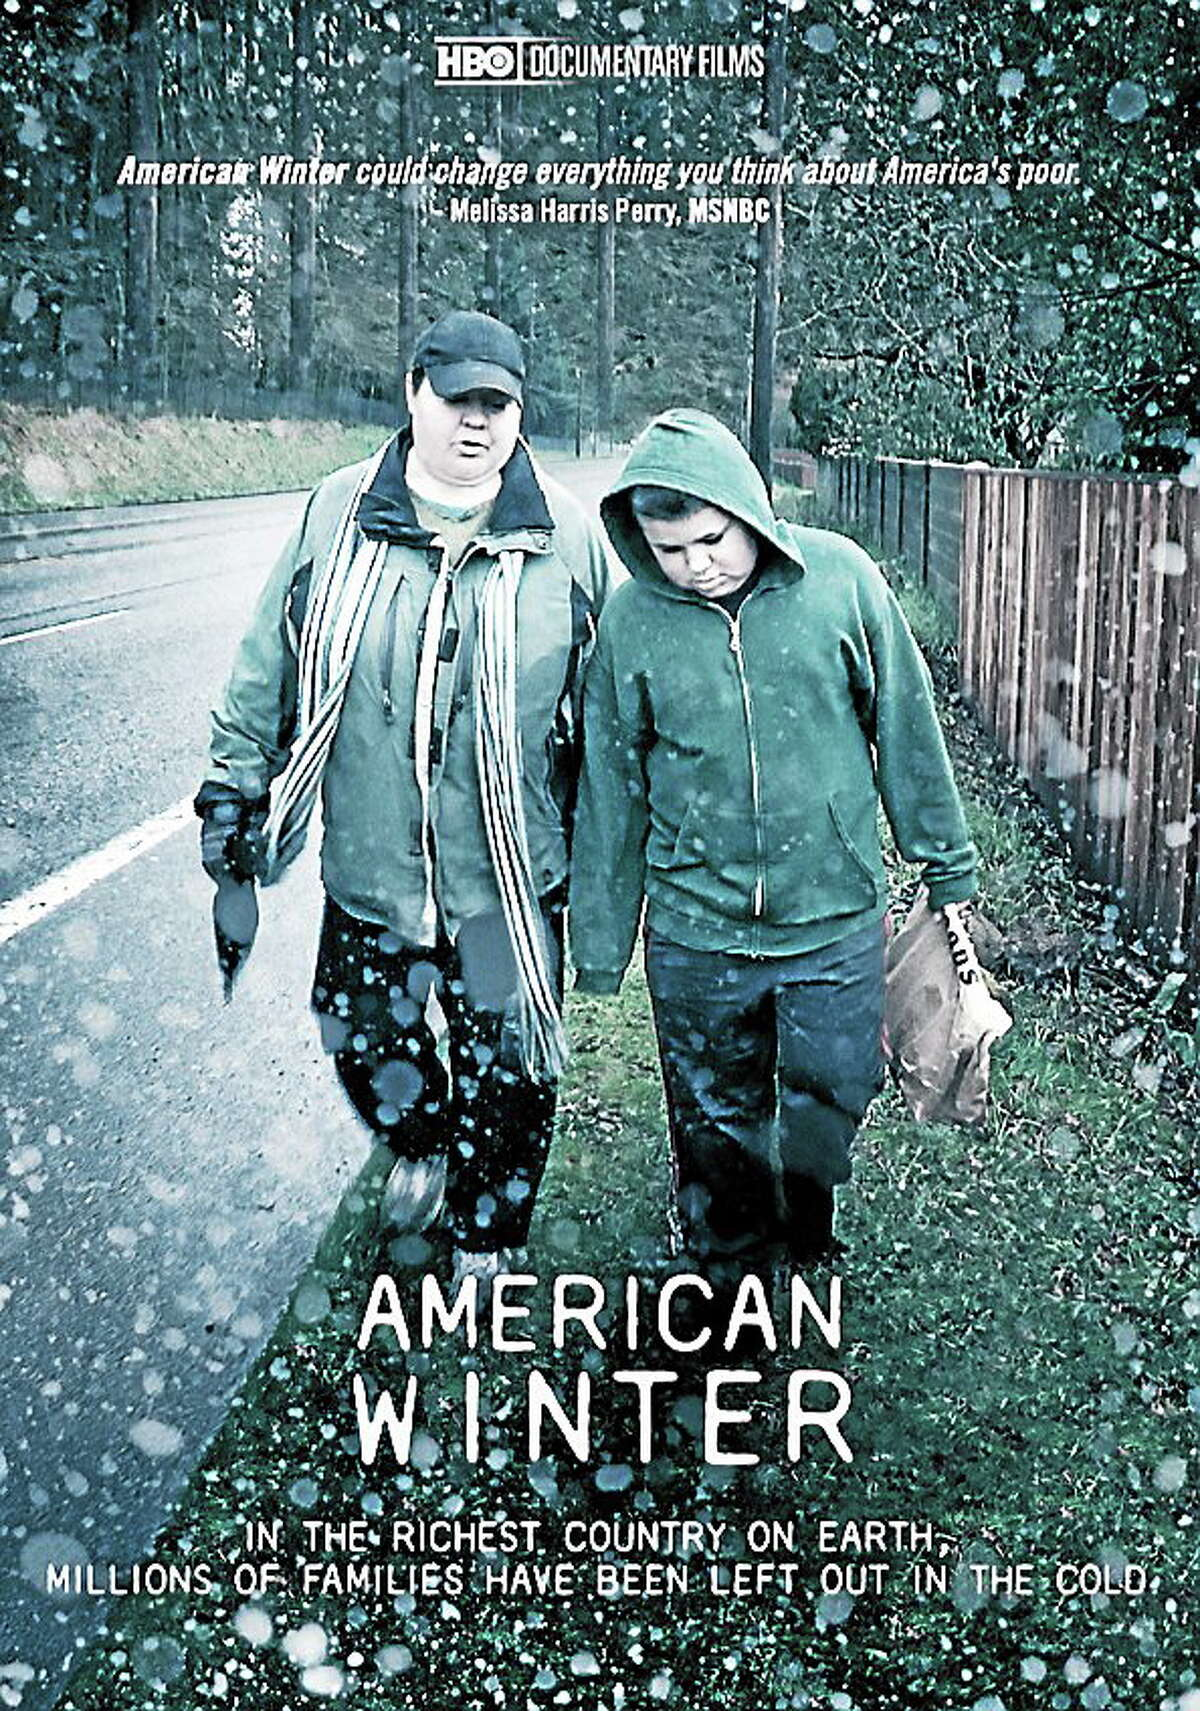 """The Middlesex County United Way will screen the film """"American Winter"""" along with a panel discussion with Emmy award-winning filmmaker Harry Gantz in Middletown on April 7."""